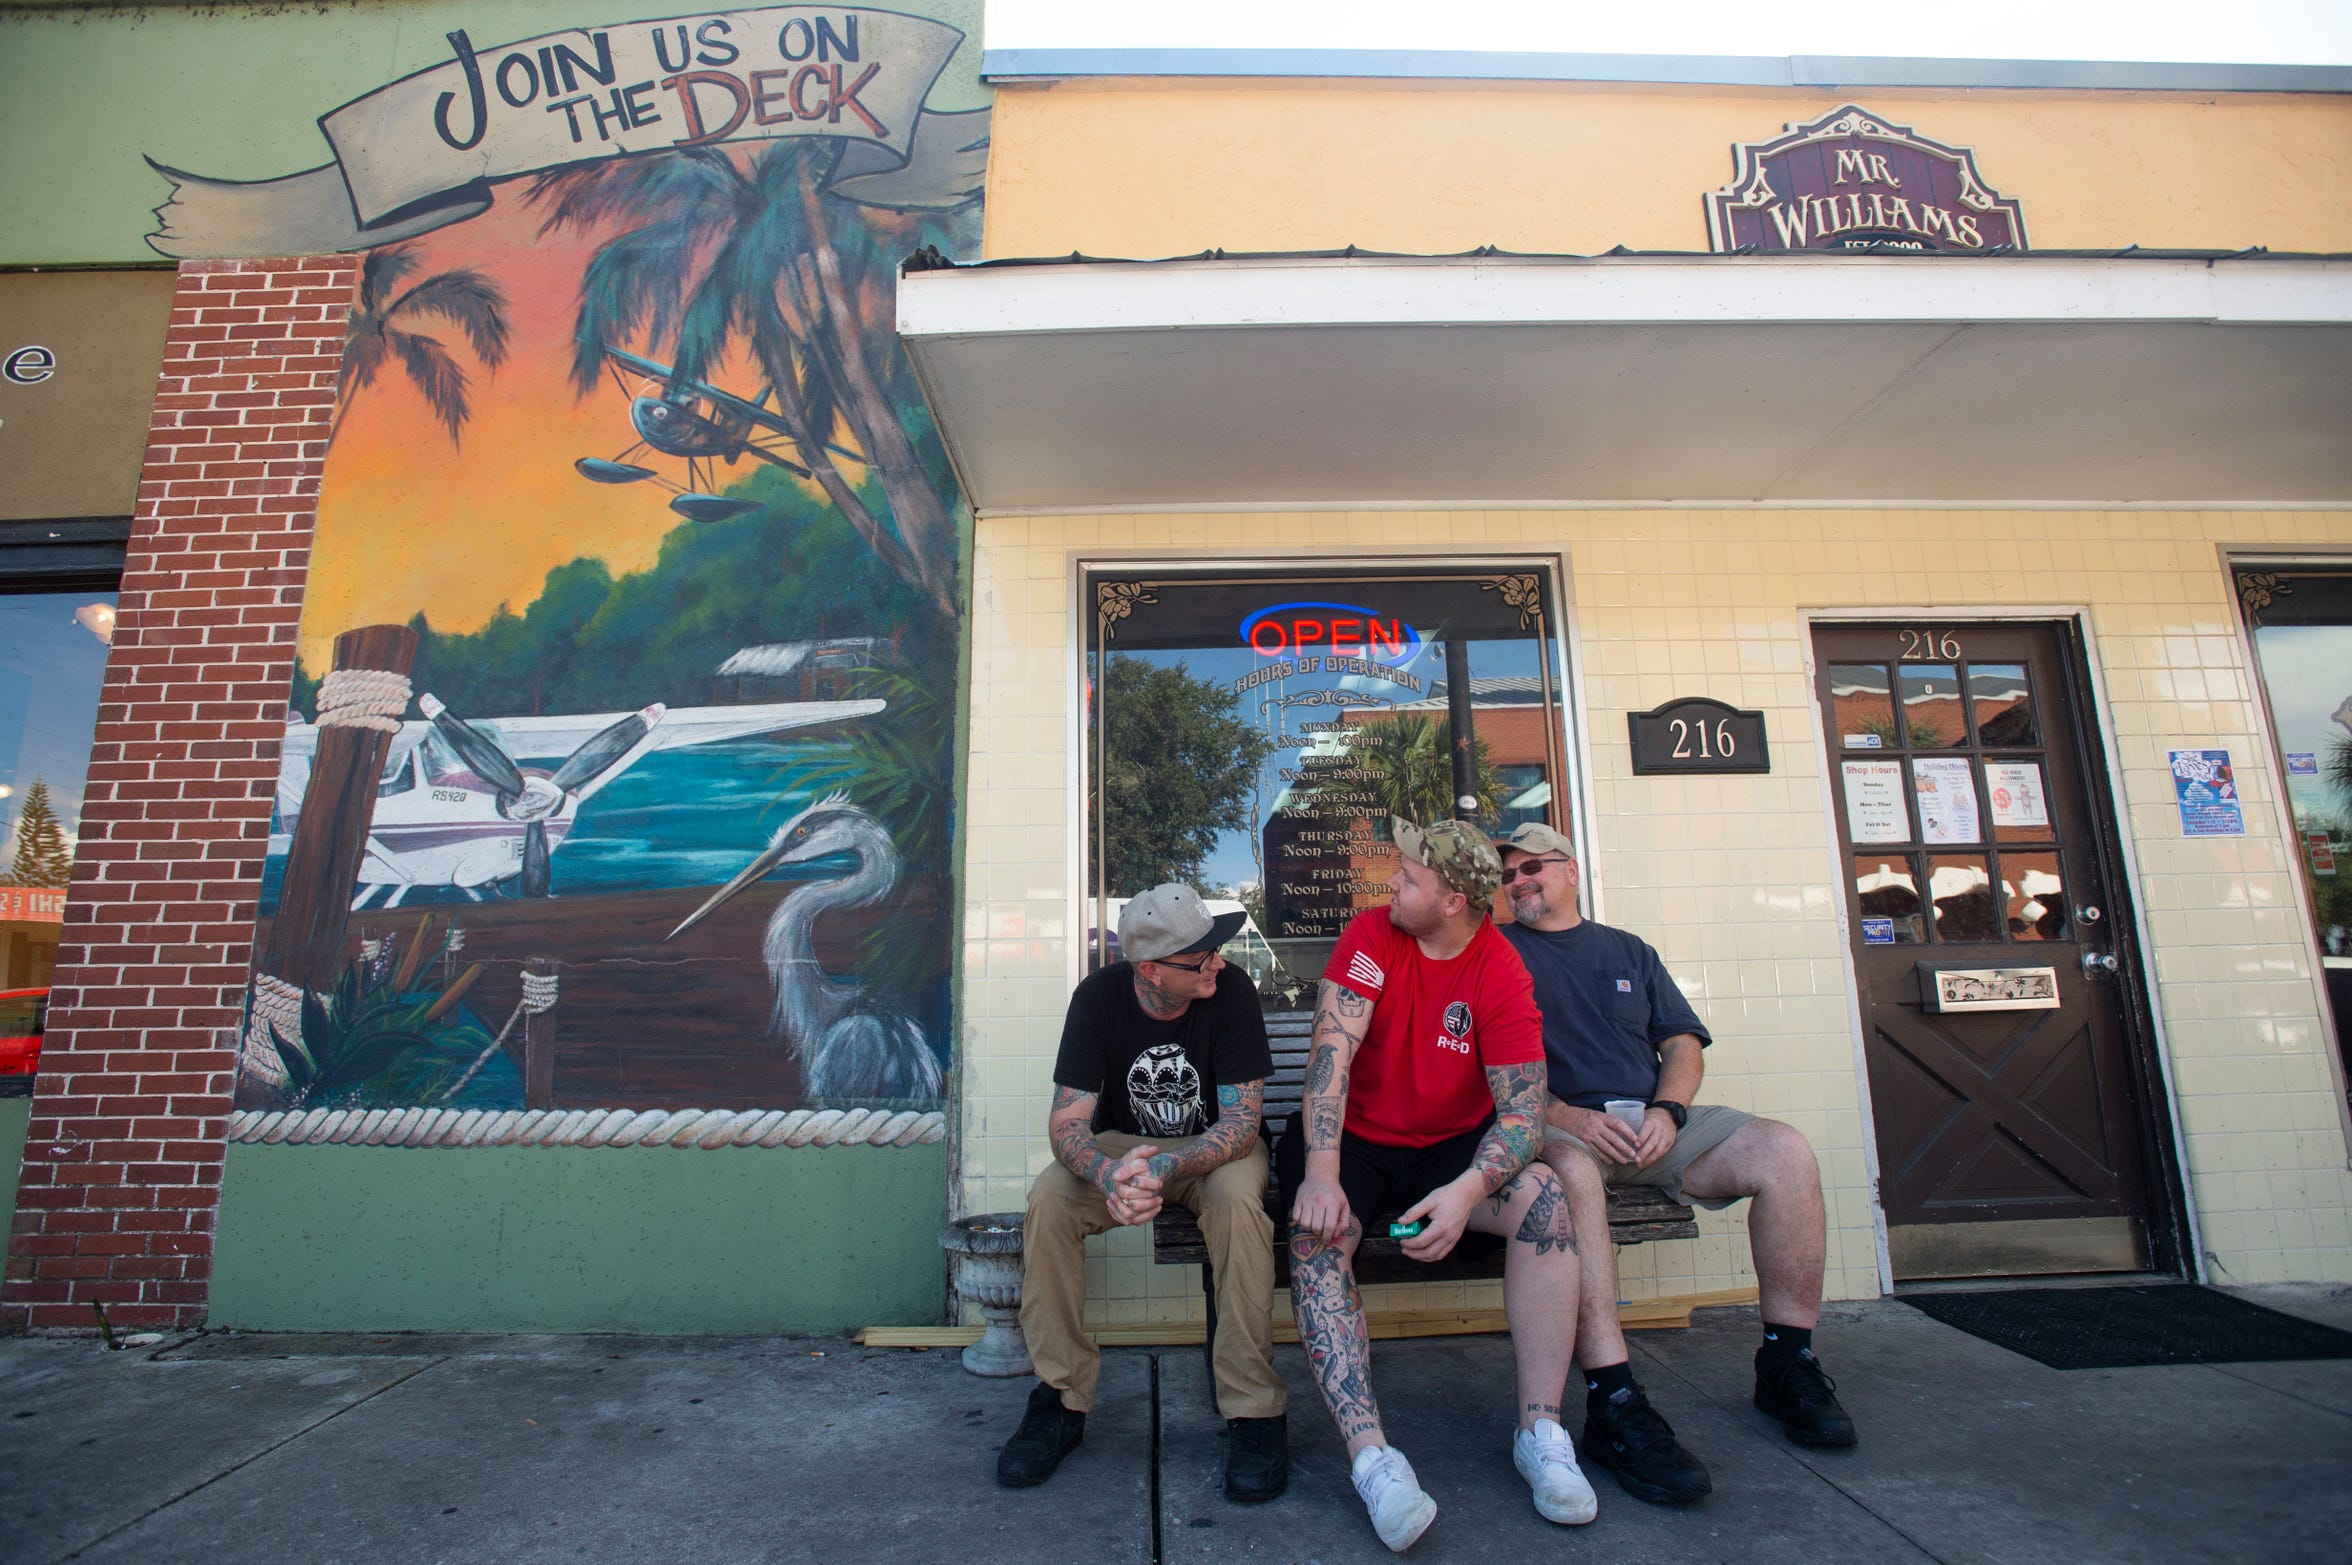 """Mr. Williams Tattoo Co. artist Kent Marvel (left) and clients Stephen Malmrose and Ray Malmrose, all of Tavares, enjoy a break outside near a seaplane mural Thursday, Nov. 8, 2018, in Tavares. """"Everywhere you look, you'll see a little seaplane. That's why we moved here,"""" Kent said, noting the business opened in 2005 and moved to Main Street in 2008 because of the city's rejuvenation."""